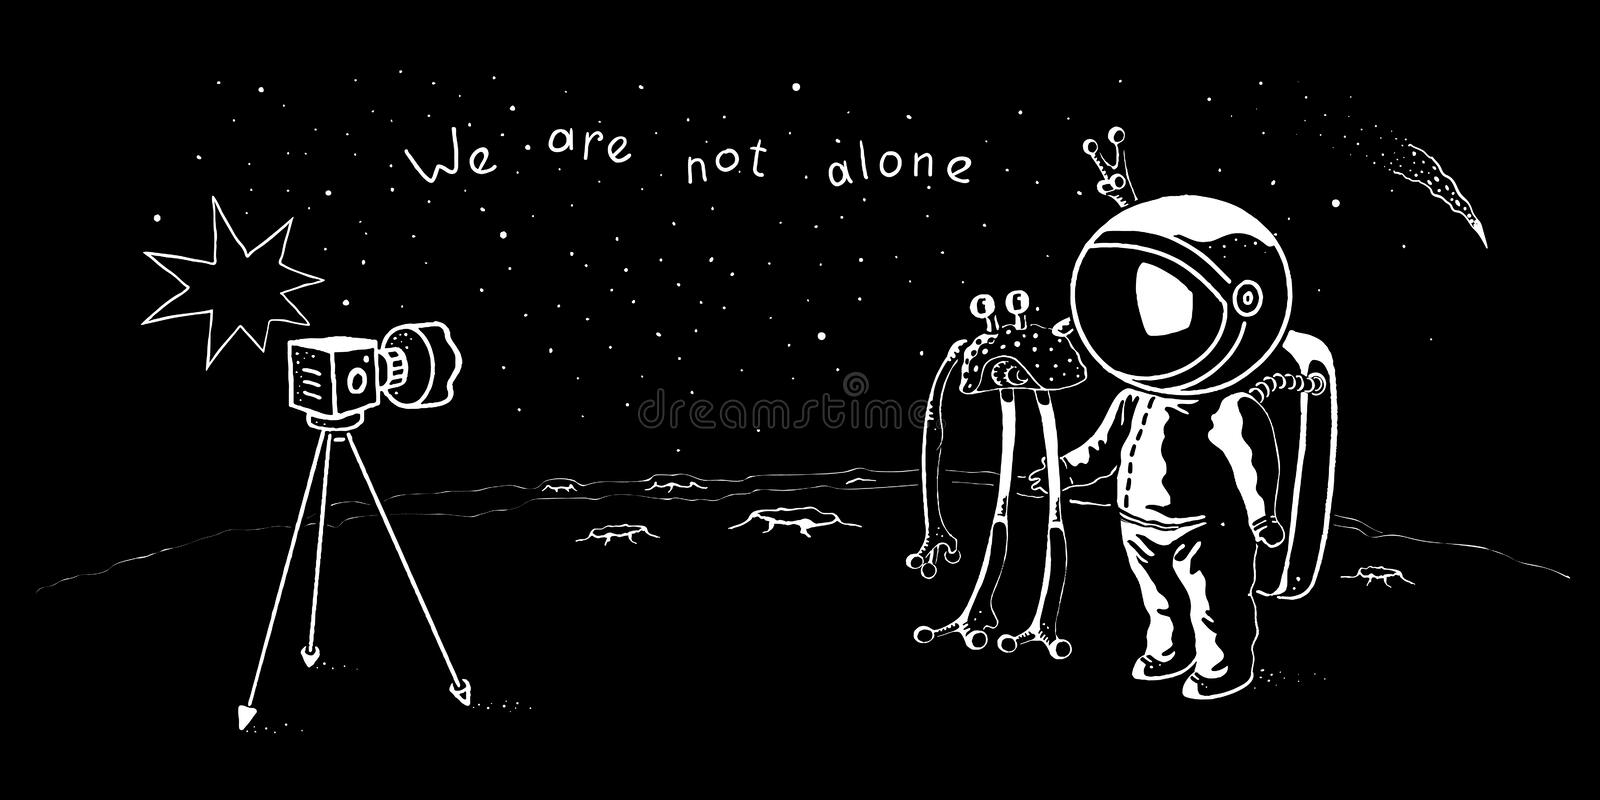 Cute astronaut and ufo vector characters posing for selfie shot. Spaceman adventure in the galaxy. Concept illustration